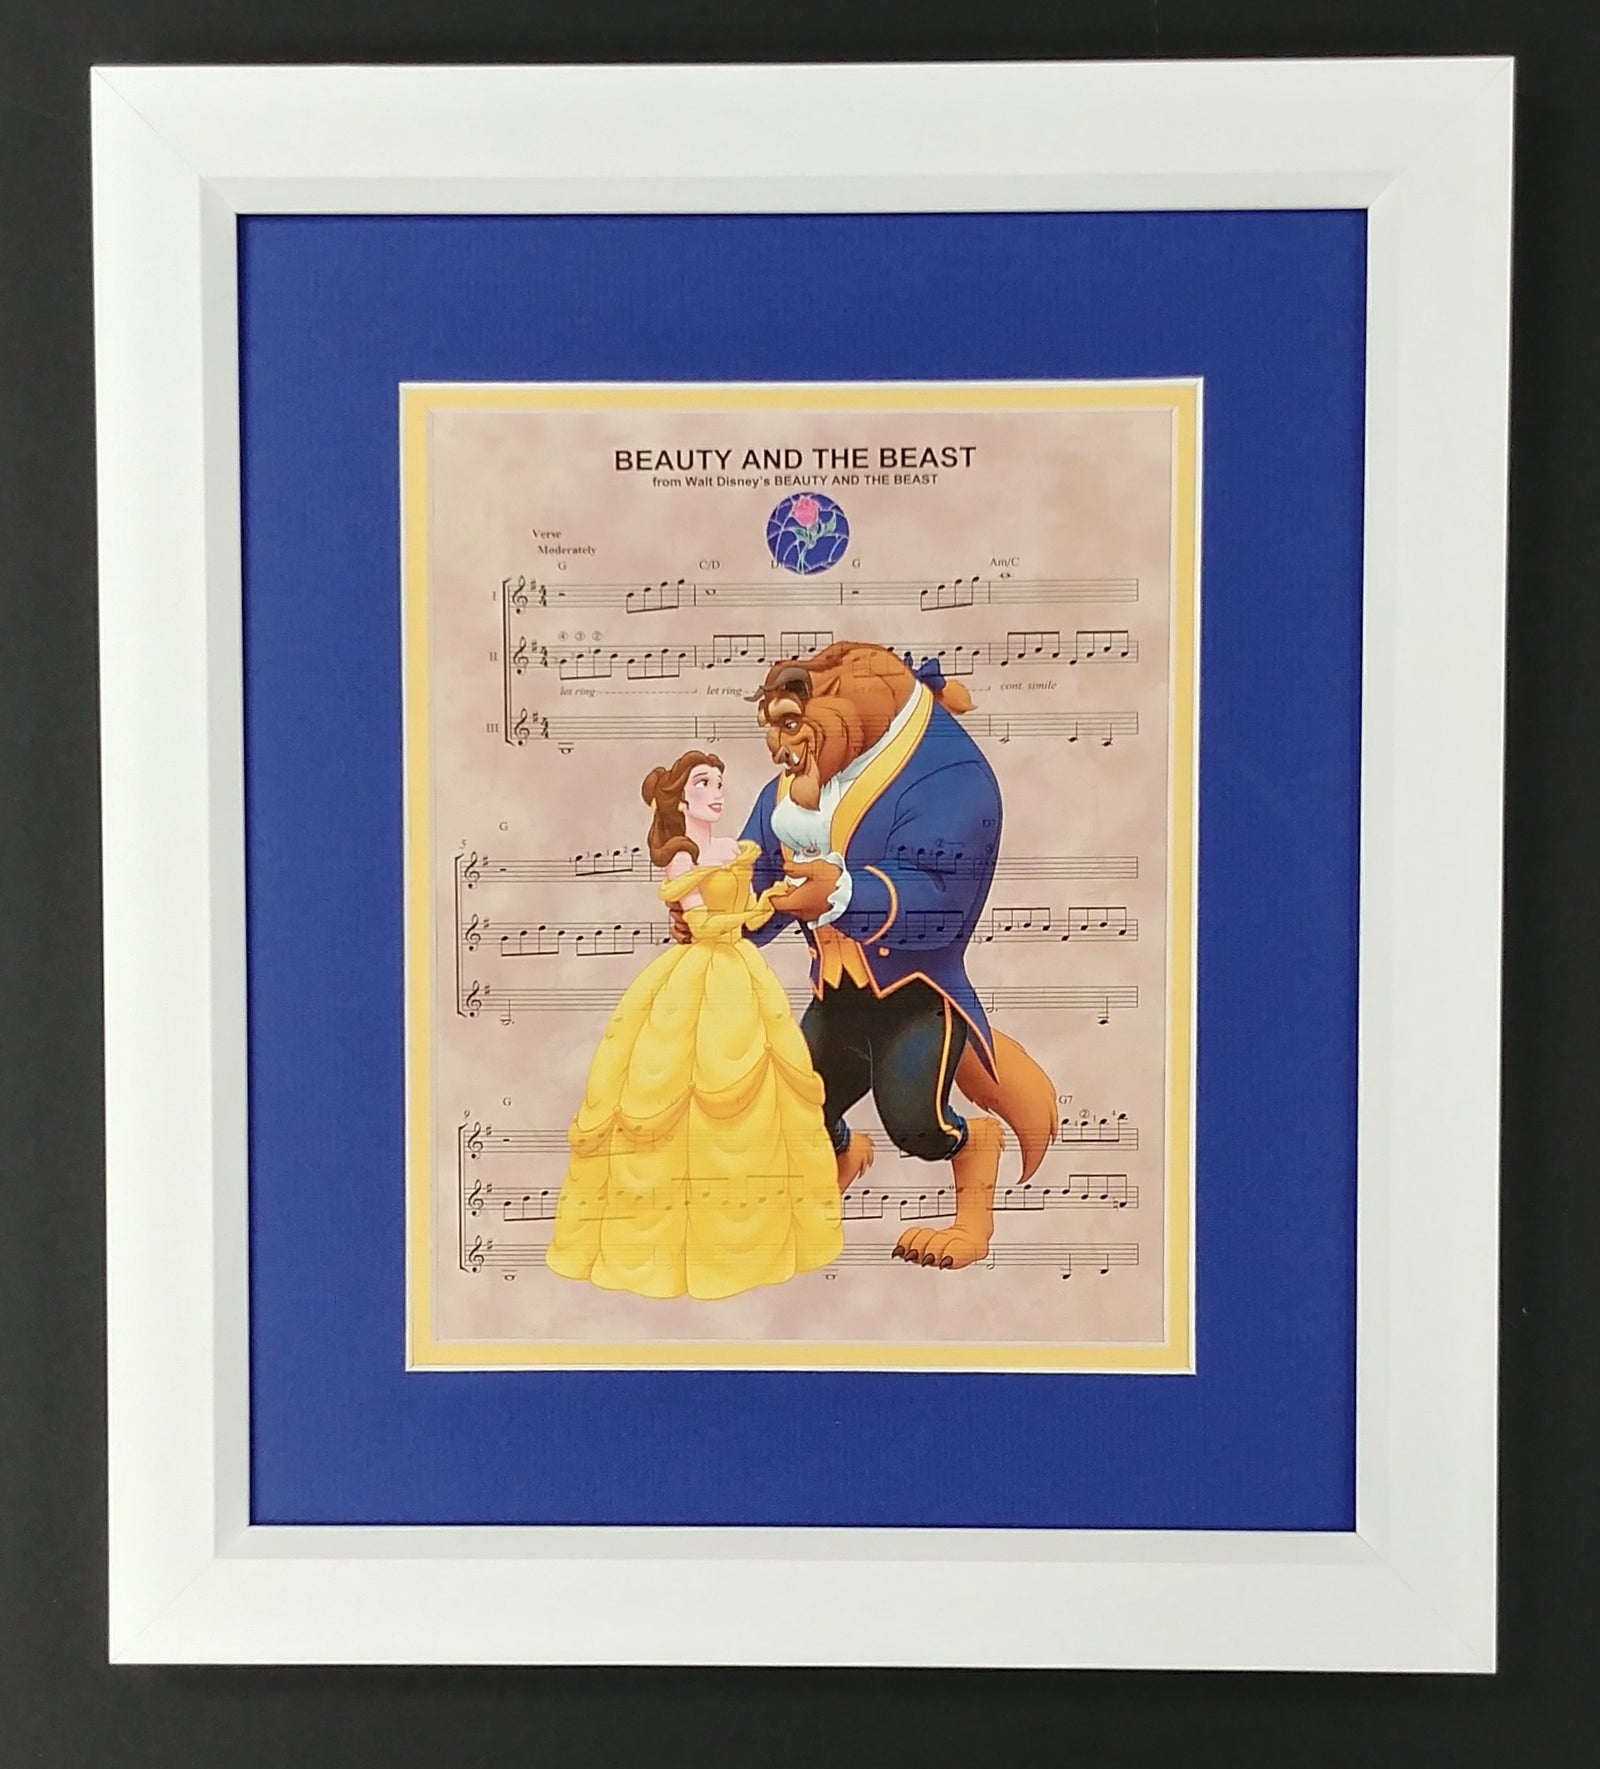 Beauty and the Best 8x10 Sheet Music Framed Print